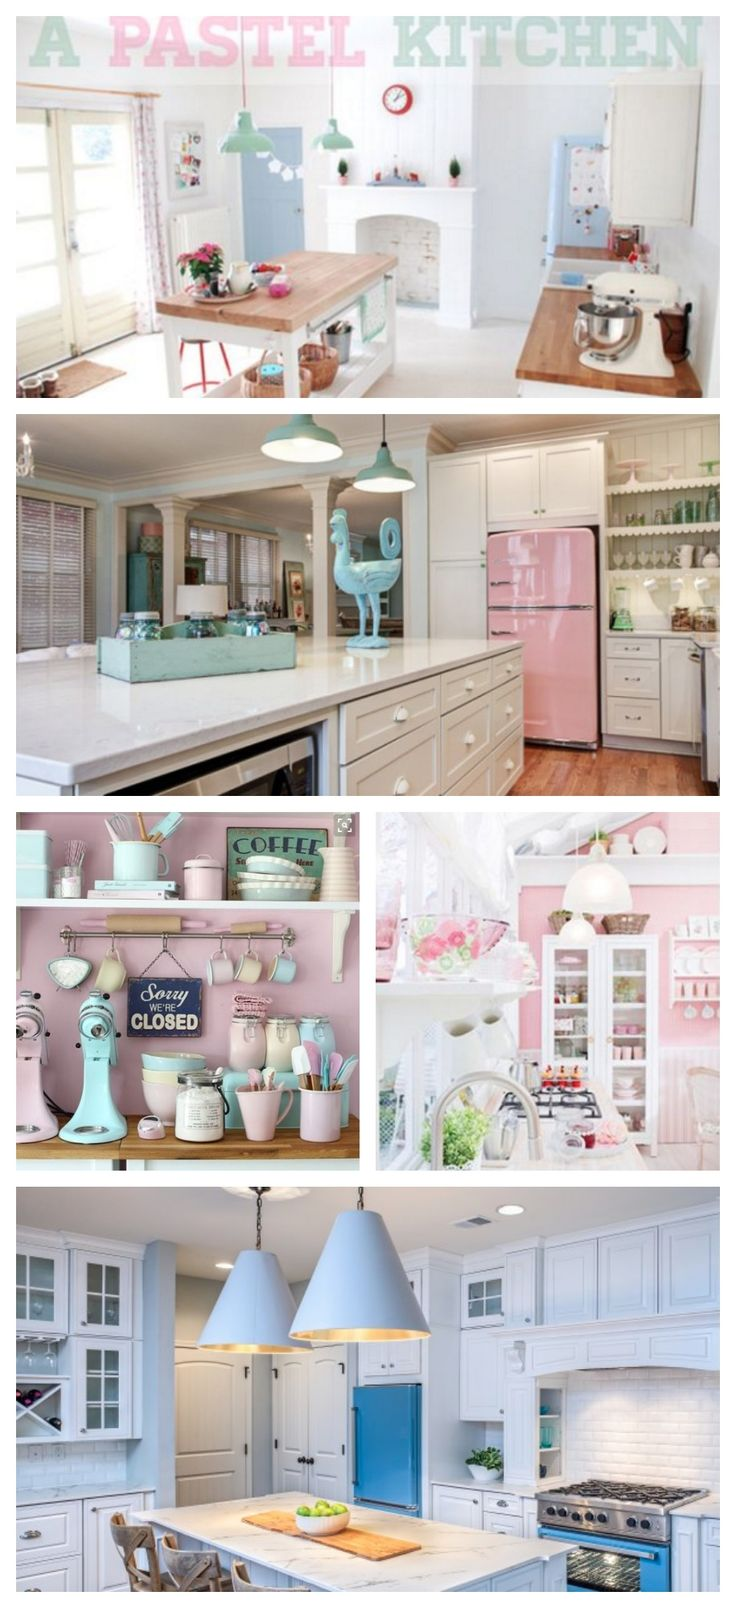 25 best pink kitchen inspiration ideas on pinterest pink 25 best pink kitchen inspiration ideas on pinterest pink kitchen interior pink kitchens and pink kitchen tile inspiration